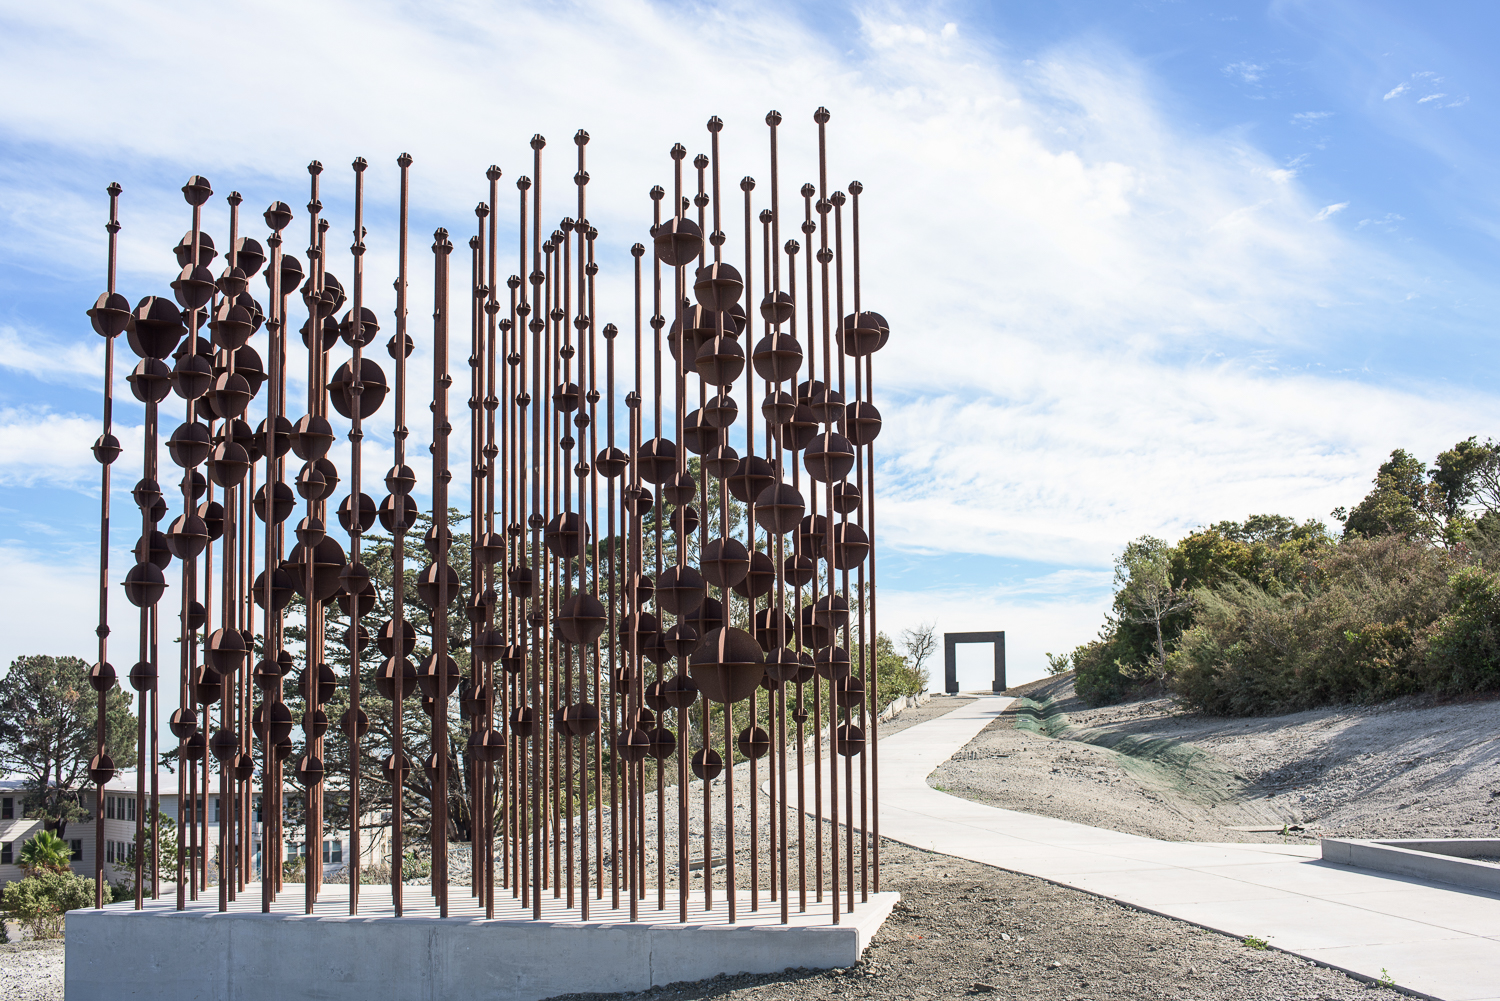 The Hunters Point Shipyard Artists (HPSA) is a community of artists who rent studios in the former shipyard on Hunters Point and host public art shows.